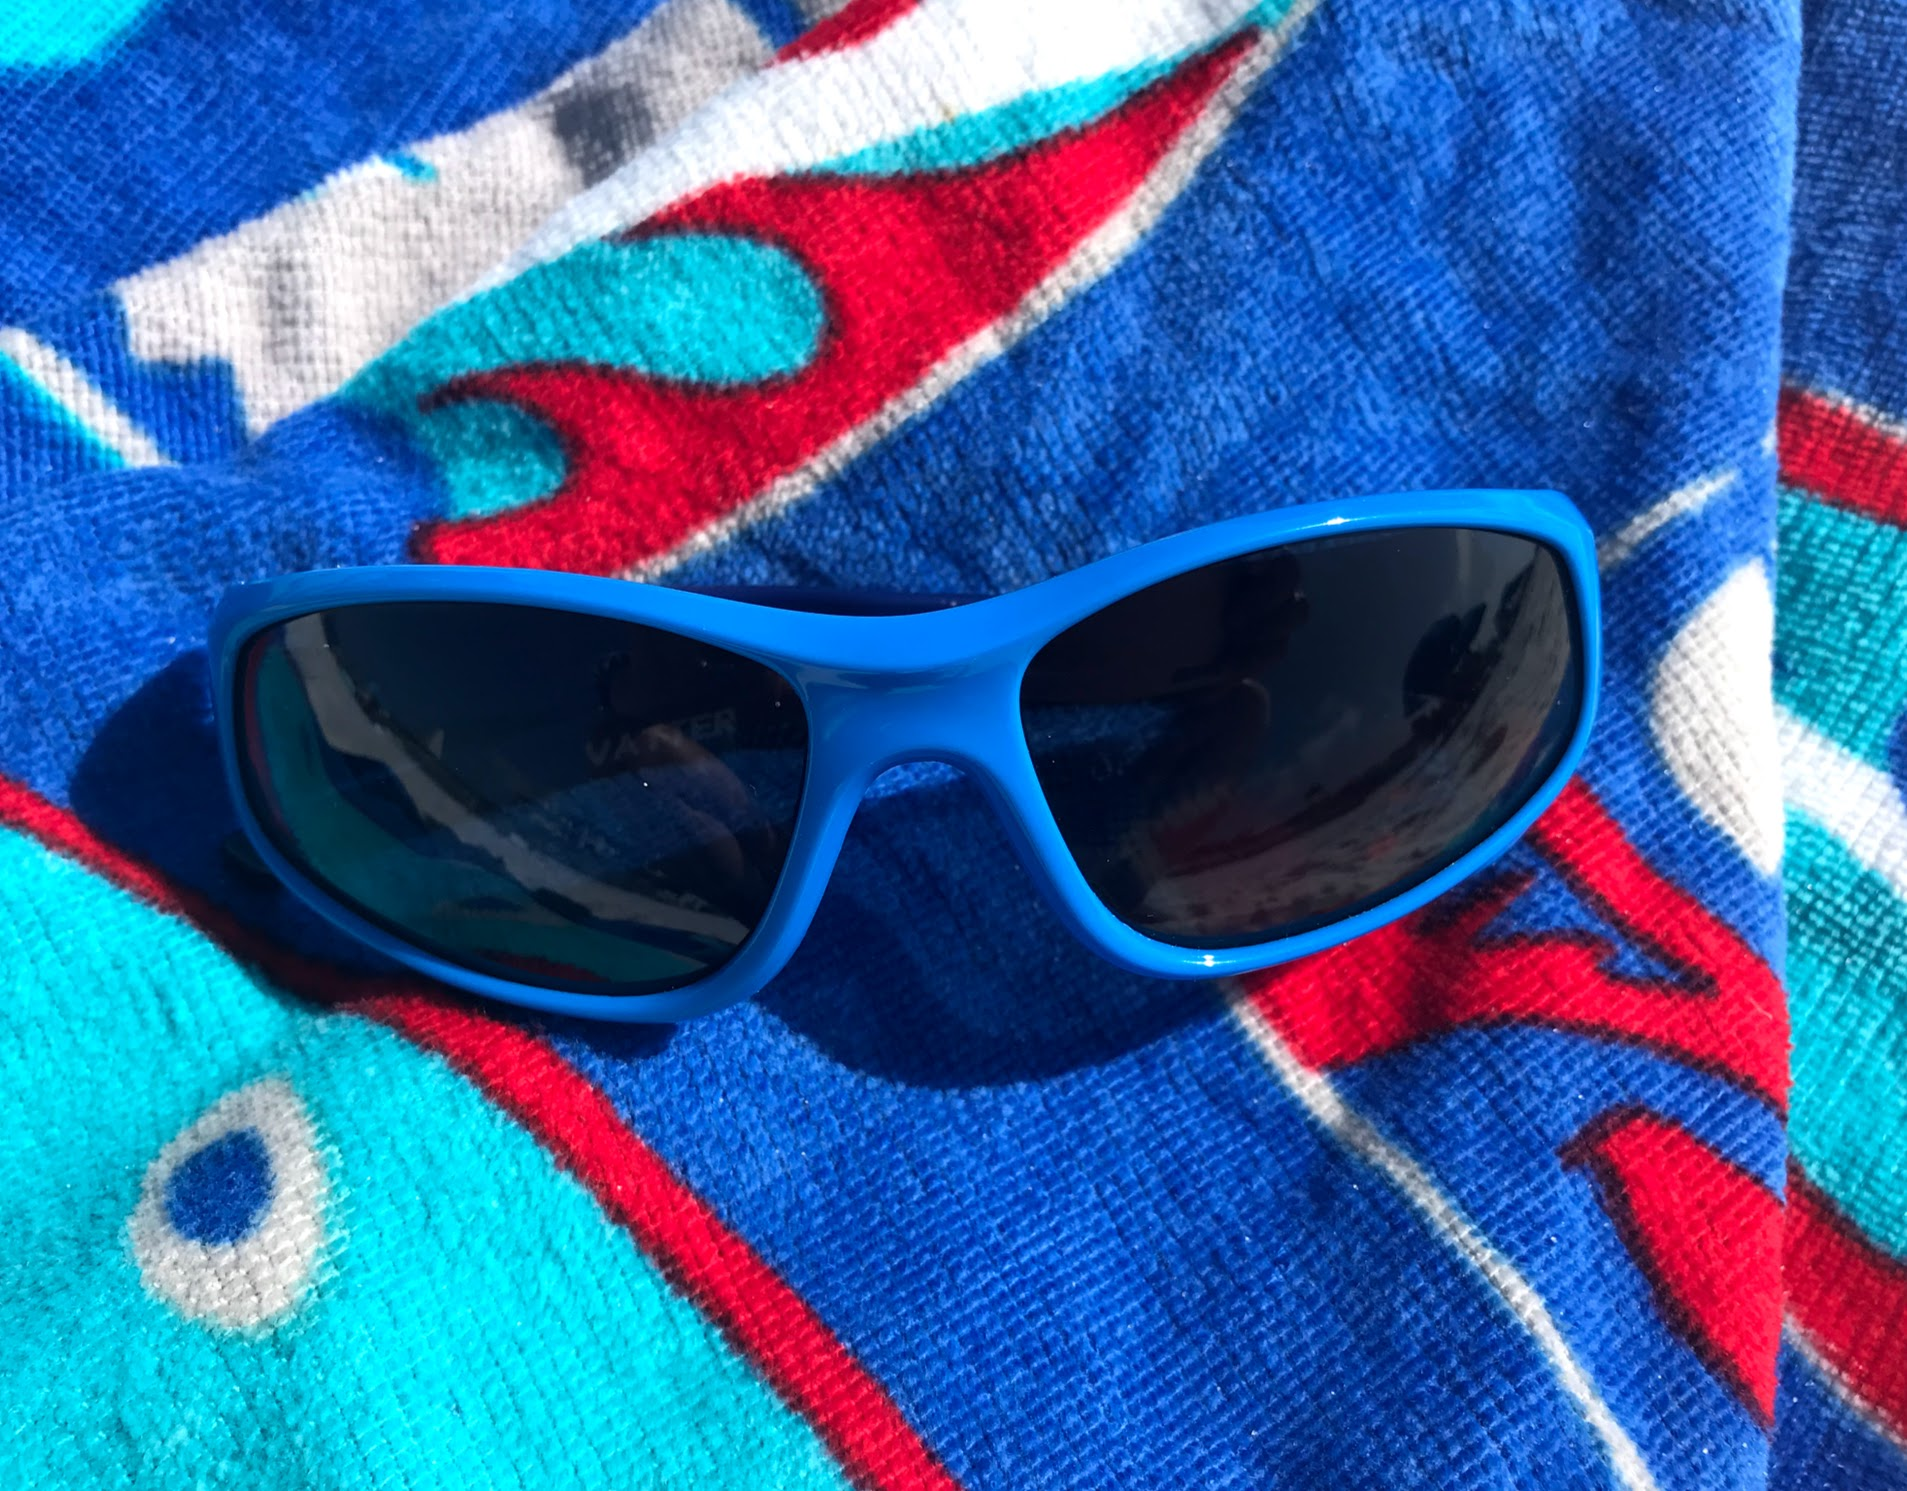 sunglasses for kids at the beach